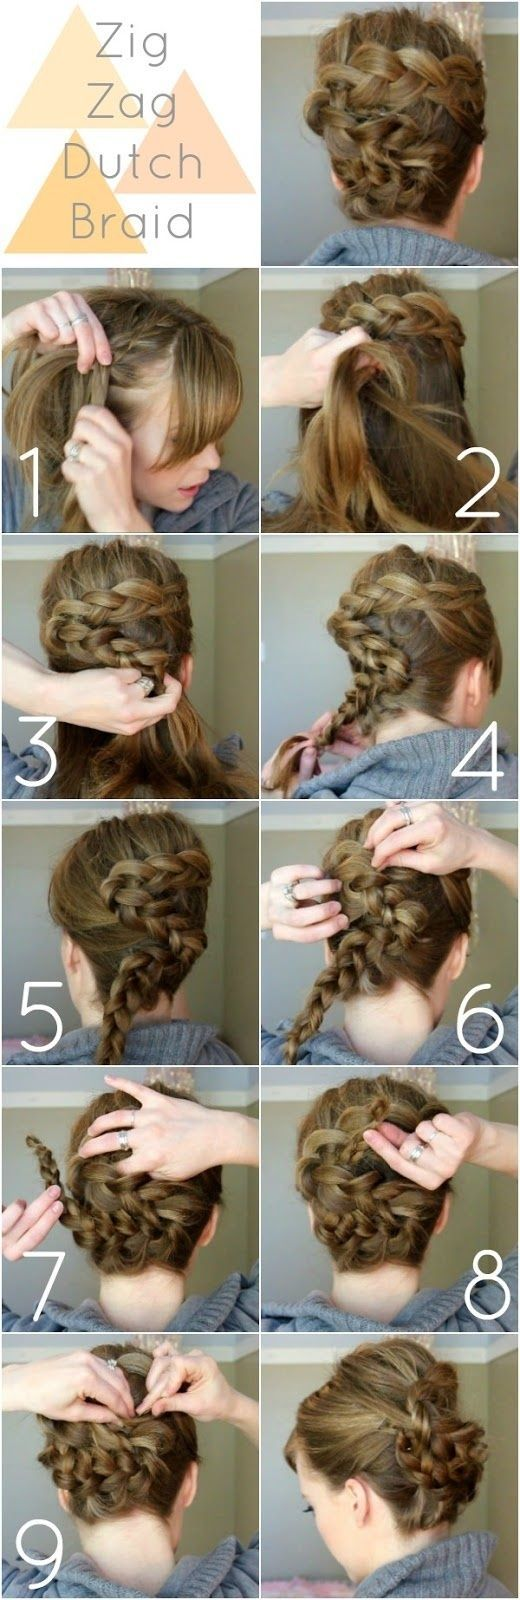 36 best dance solo hair ideas images on pinterest   hairstyles